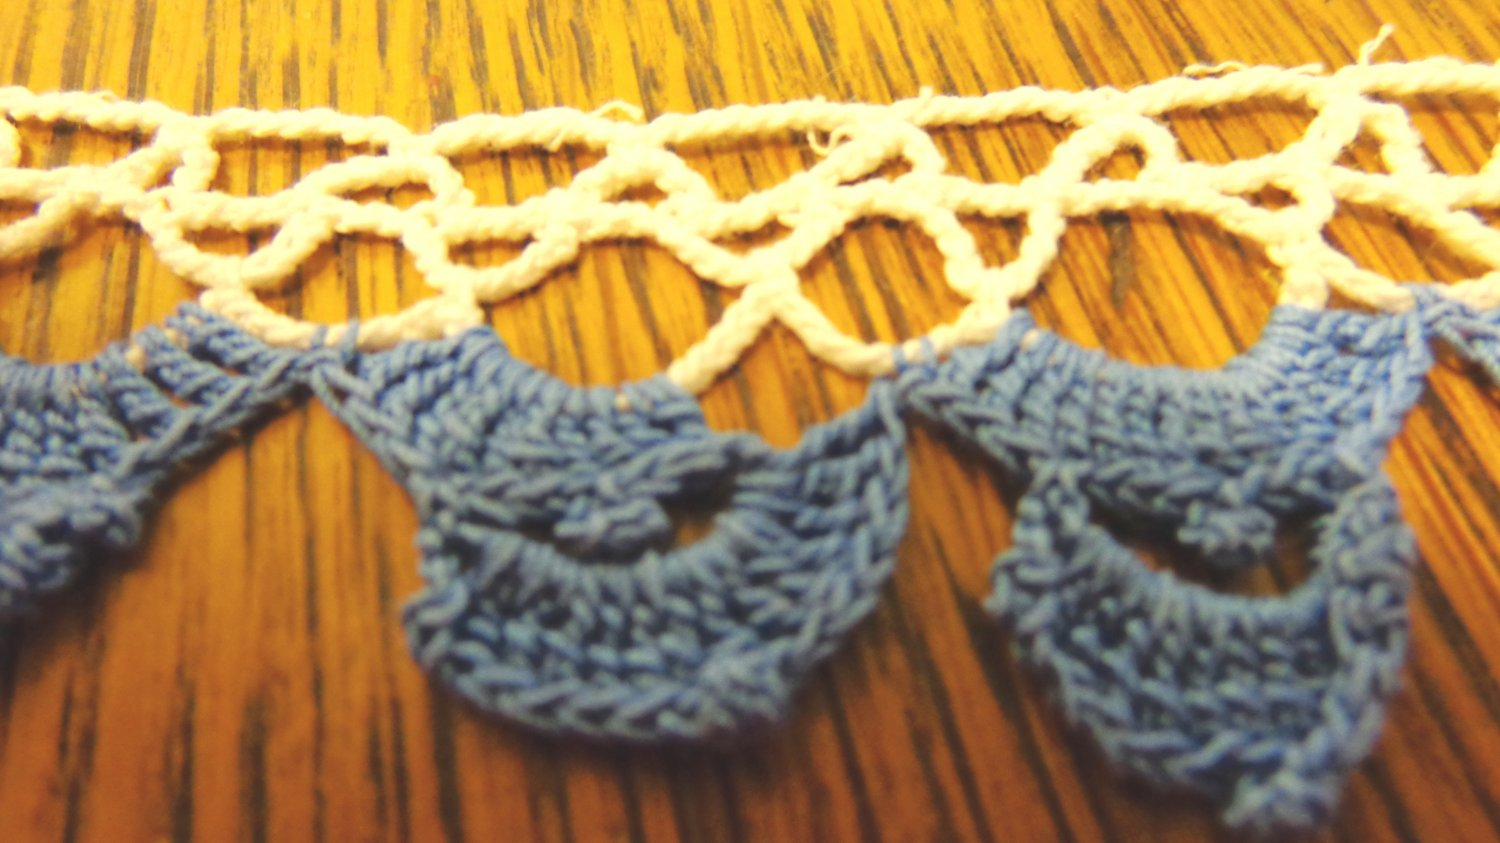 Crocheted lace trim hand made blue and white 76 inches long 1.25 inch wide hc3421